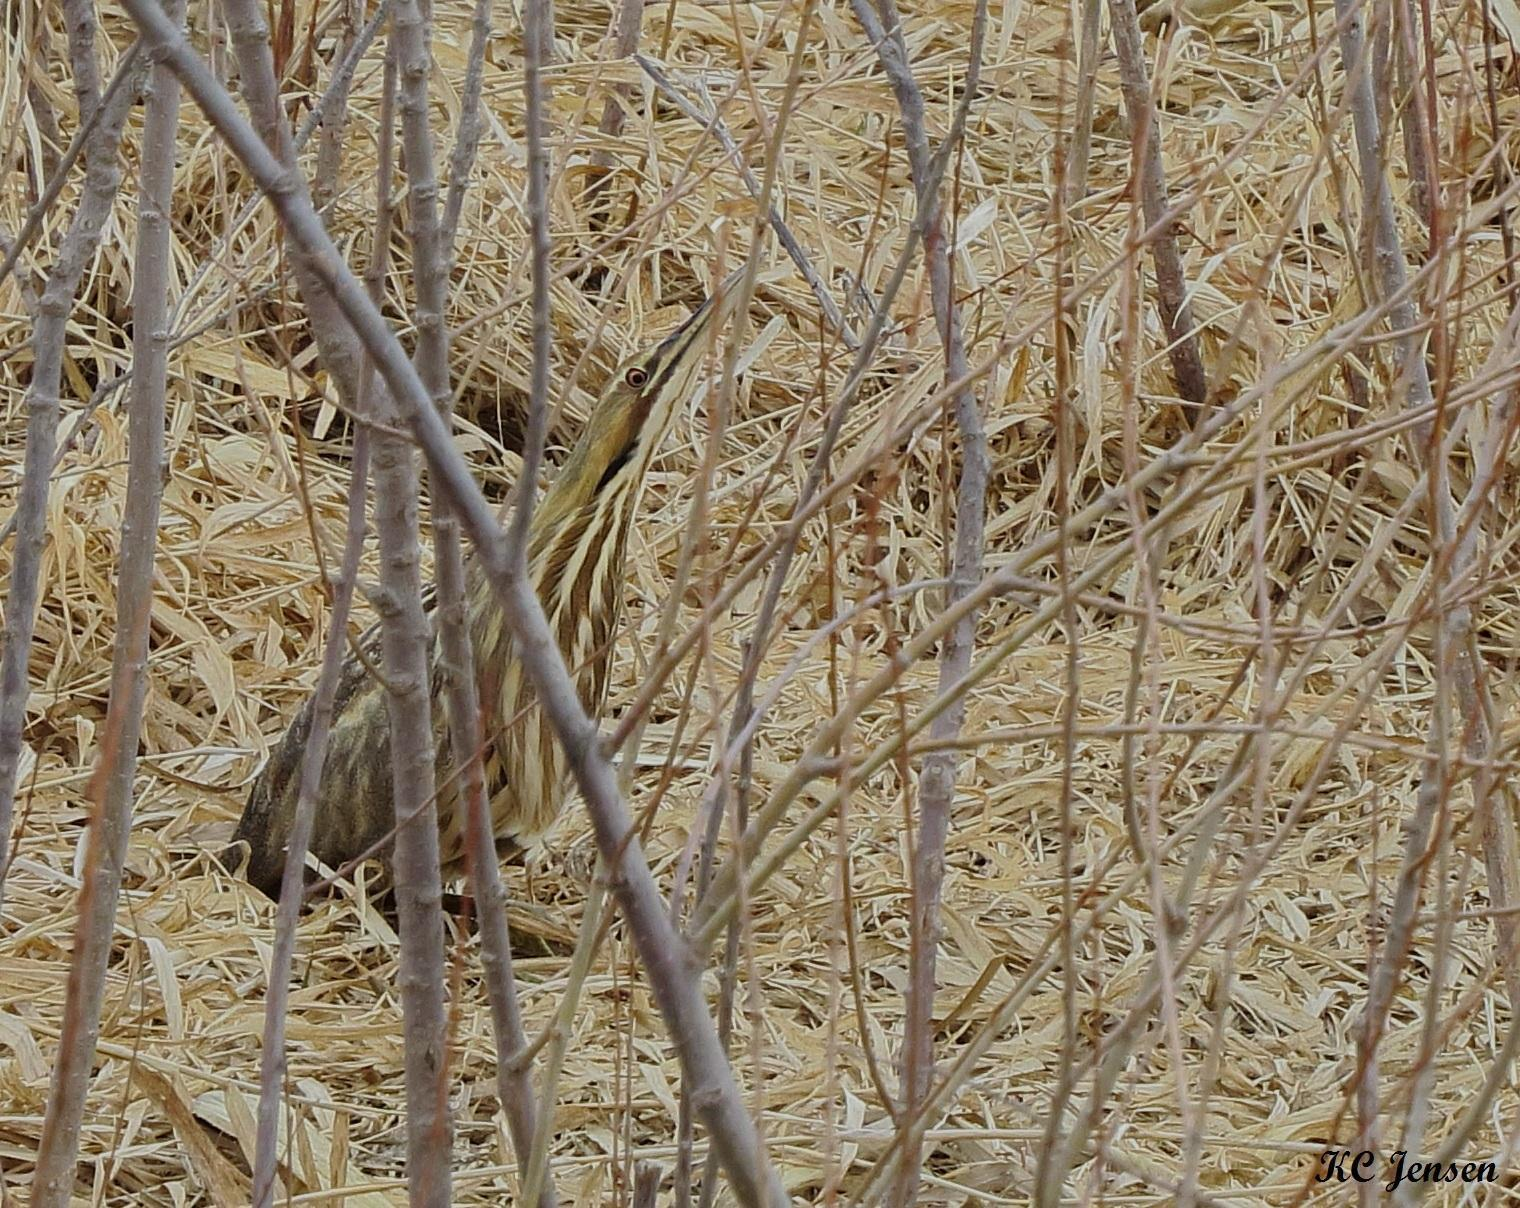 American Bittern Photo by Kent Jensen